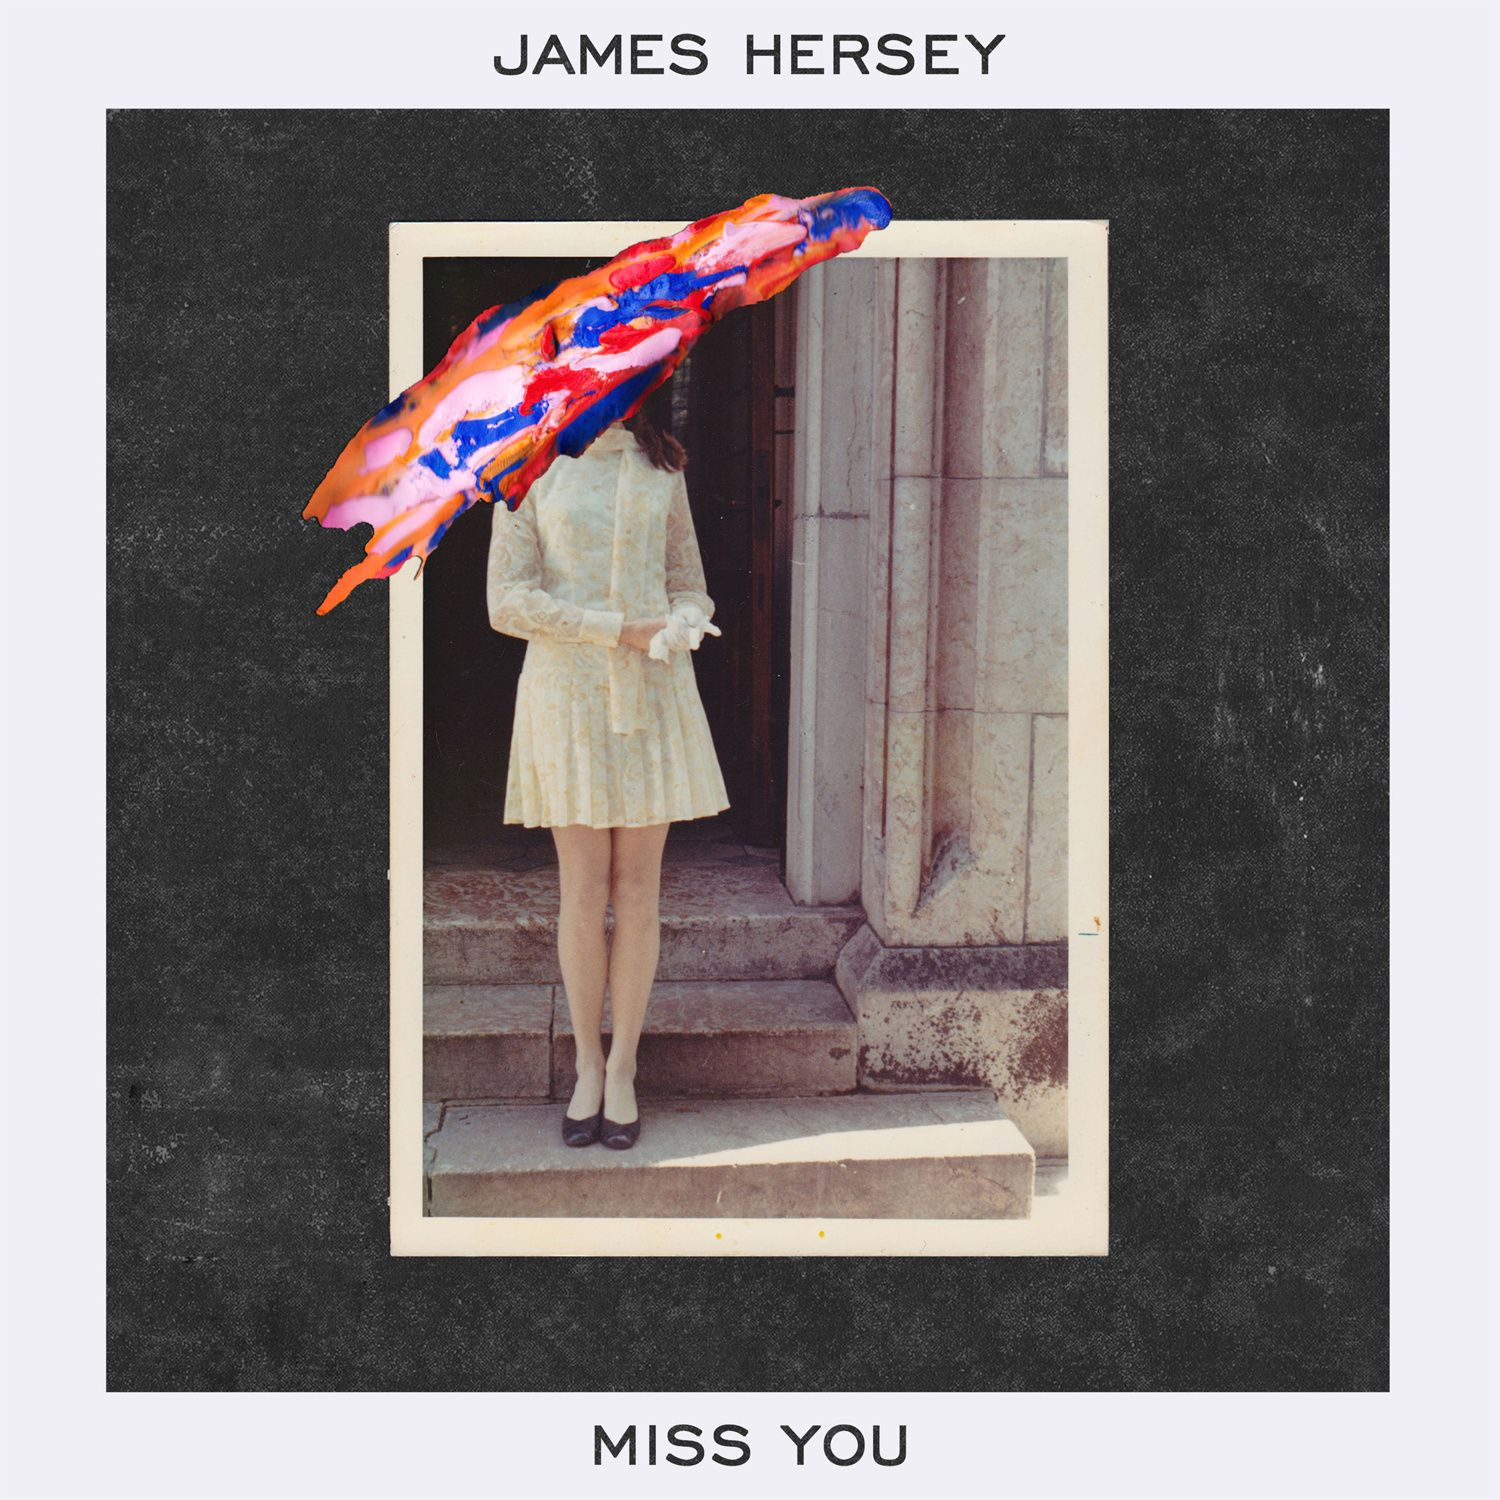 james hersey, miss you, kygo, dillon francis, glassnote, electro